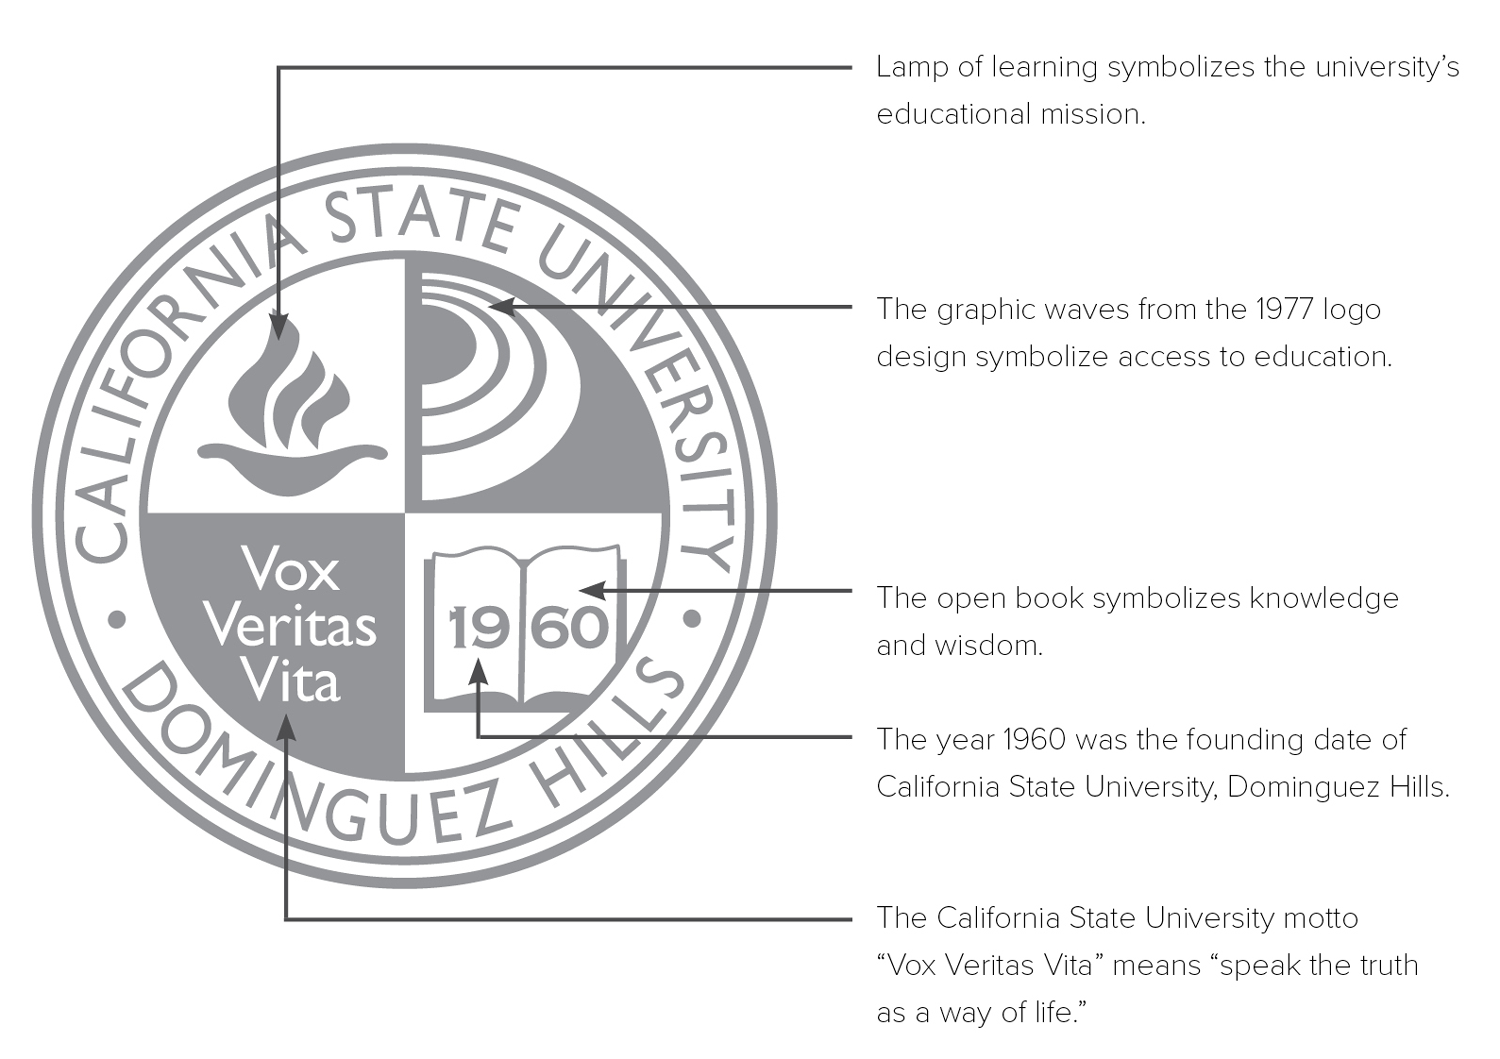 University Seal Symbolism. Lamp of learning, waves from 1977 logo, 1960 our founding year, Vox Vertas Vita - speak the truth